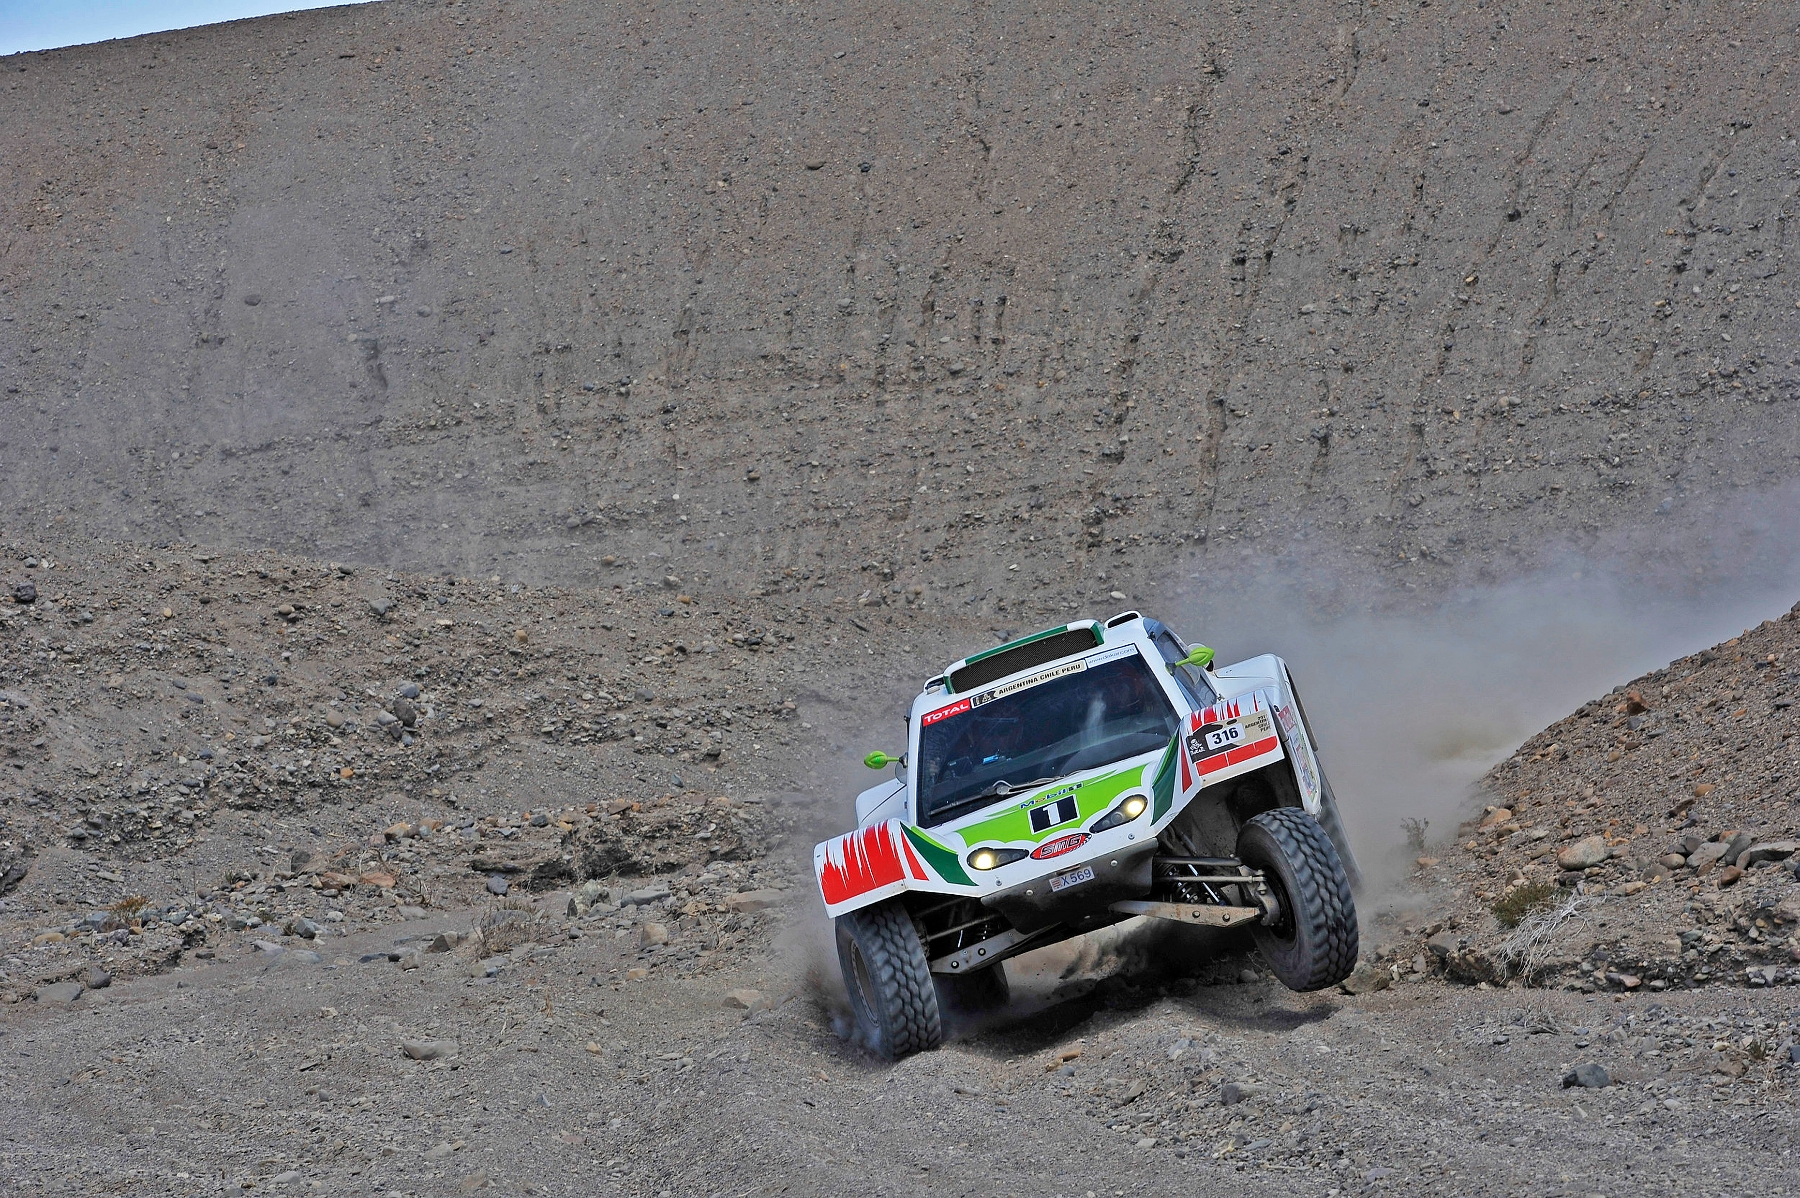 MOTORSPORT - DAKAR ARGENTINA CHILE PERU 2012 - STAGE 8 - COPIAPO (CHI) TO ANTOFAGASTA (CHI) - 09/01/2012 - PHOTO: DPPI